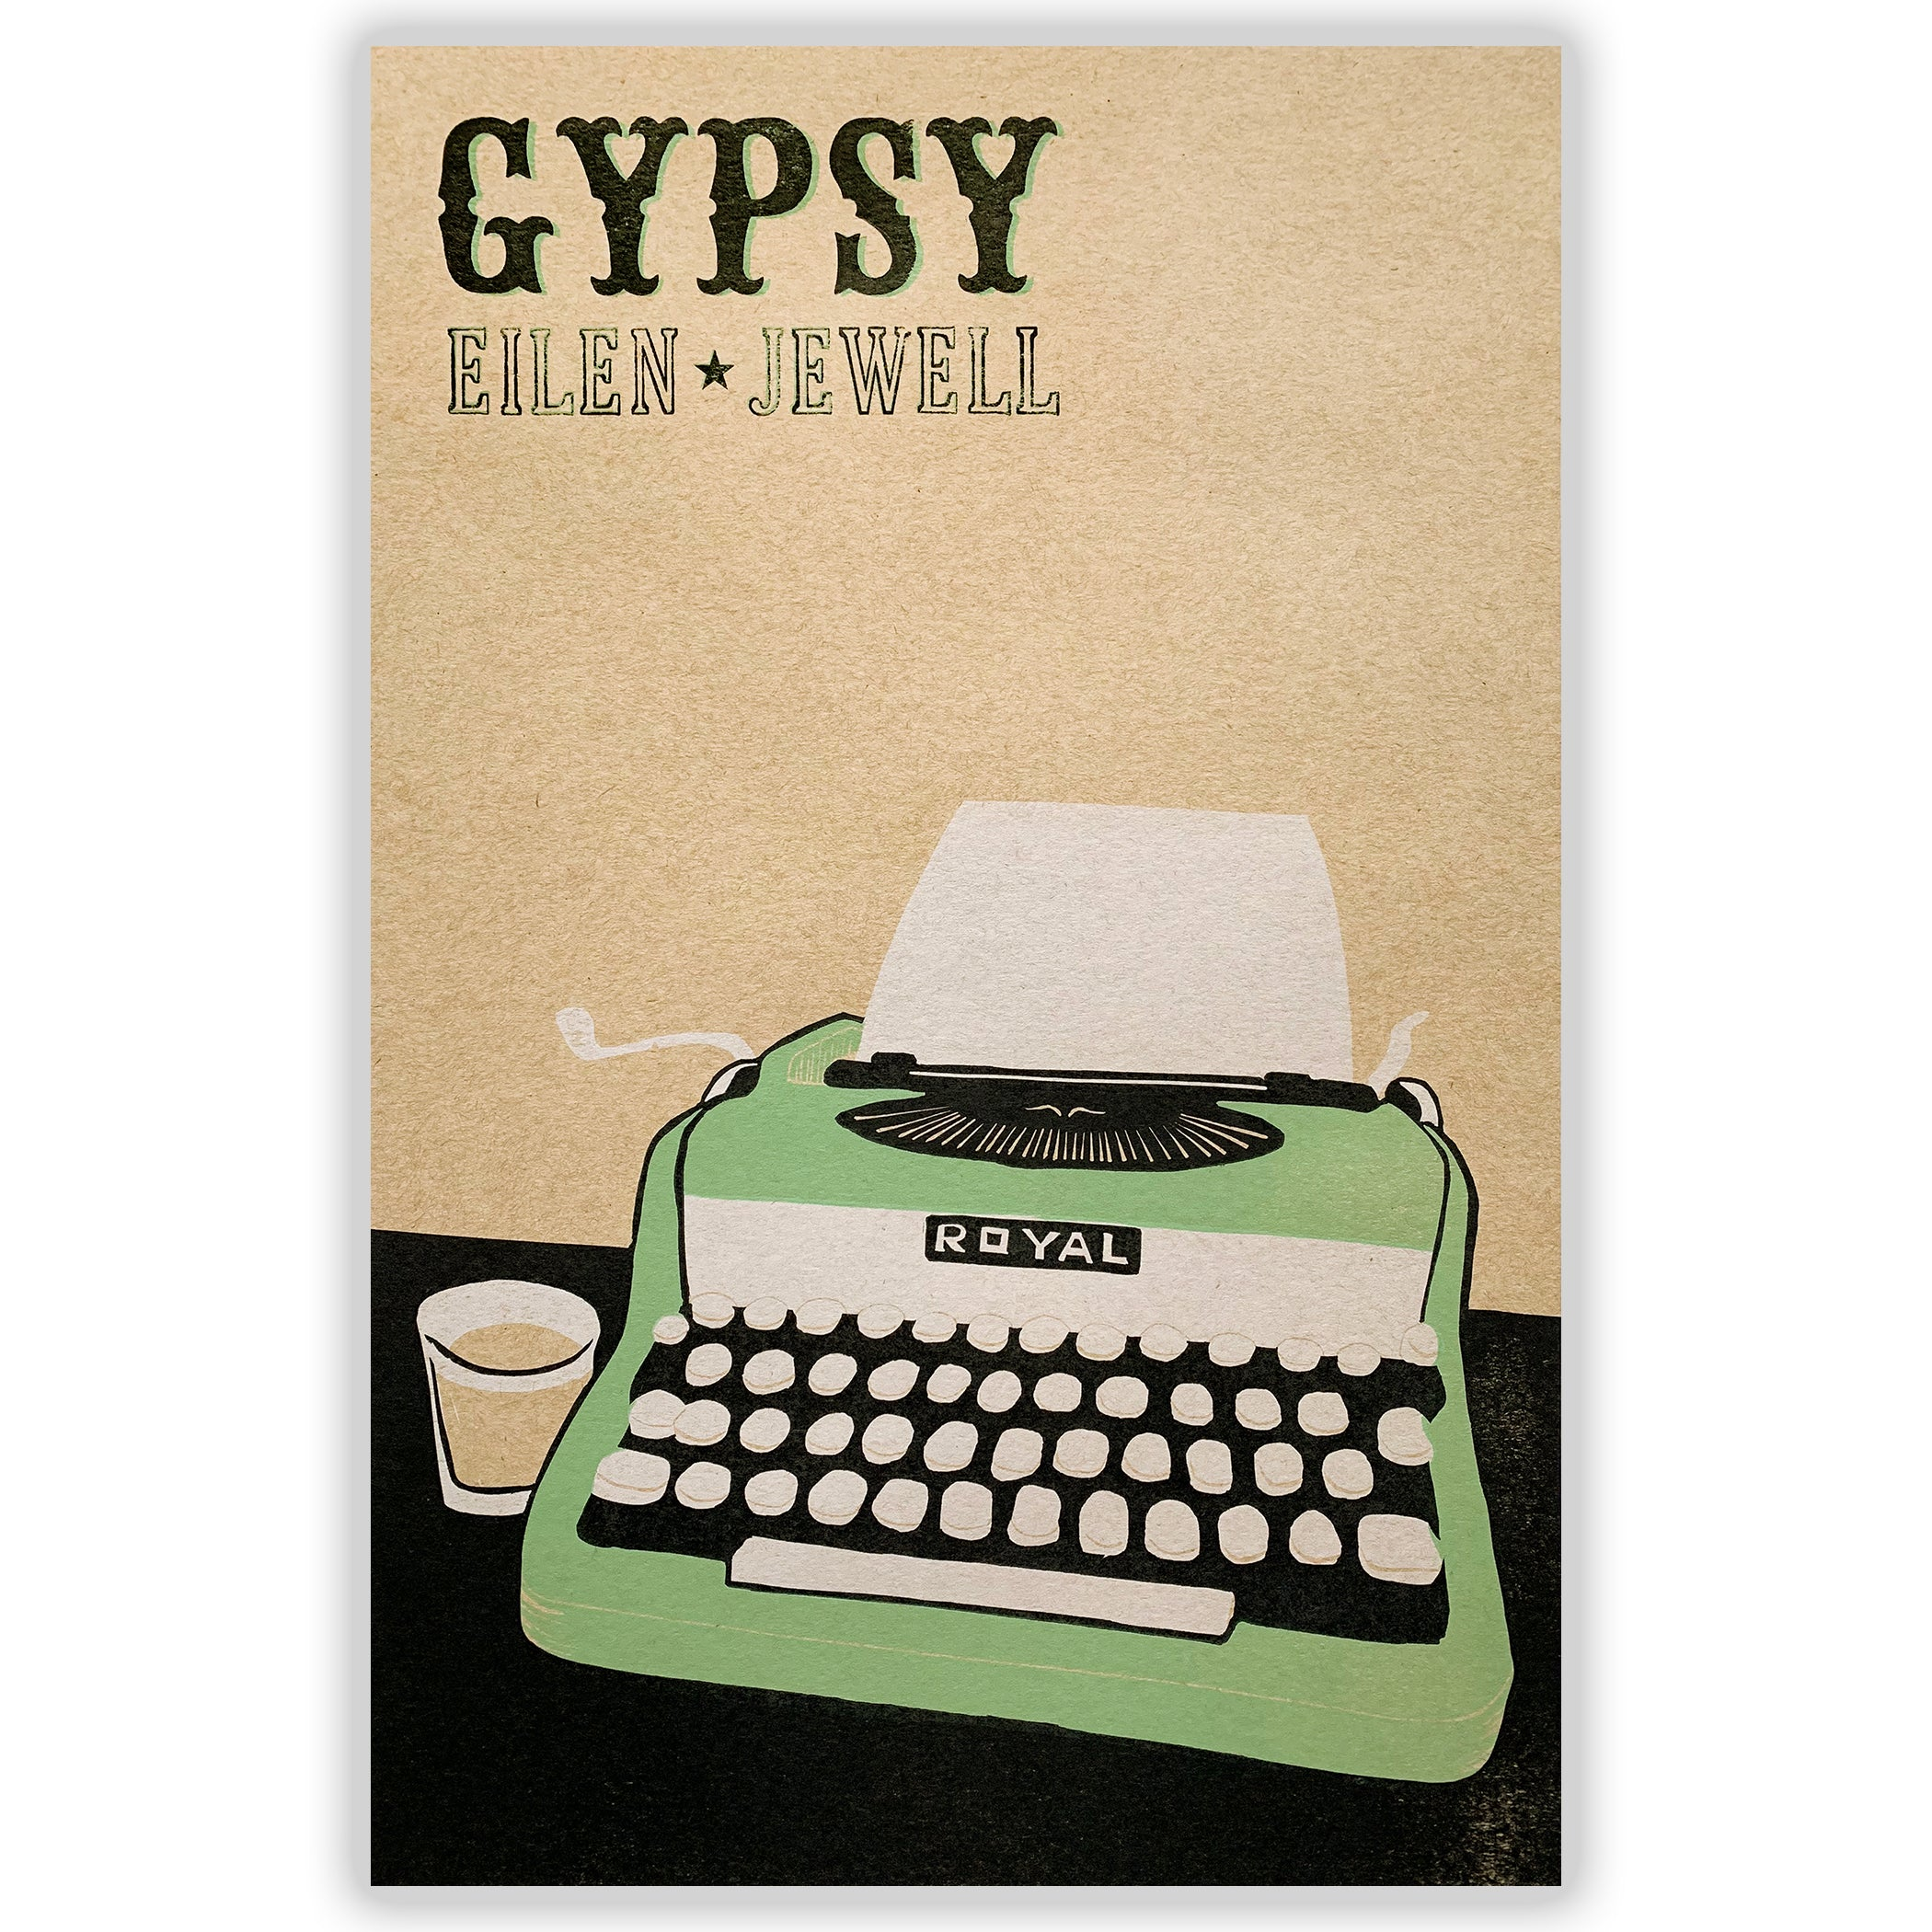 "Eilen Jewell ""Gypsy"" - Typewriter letterpress print"